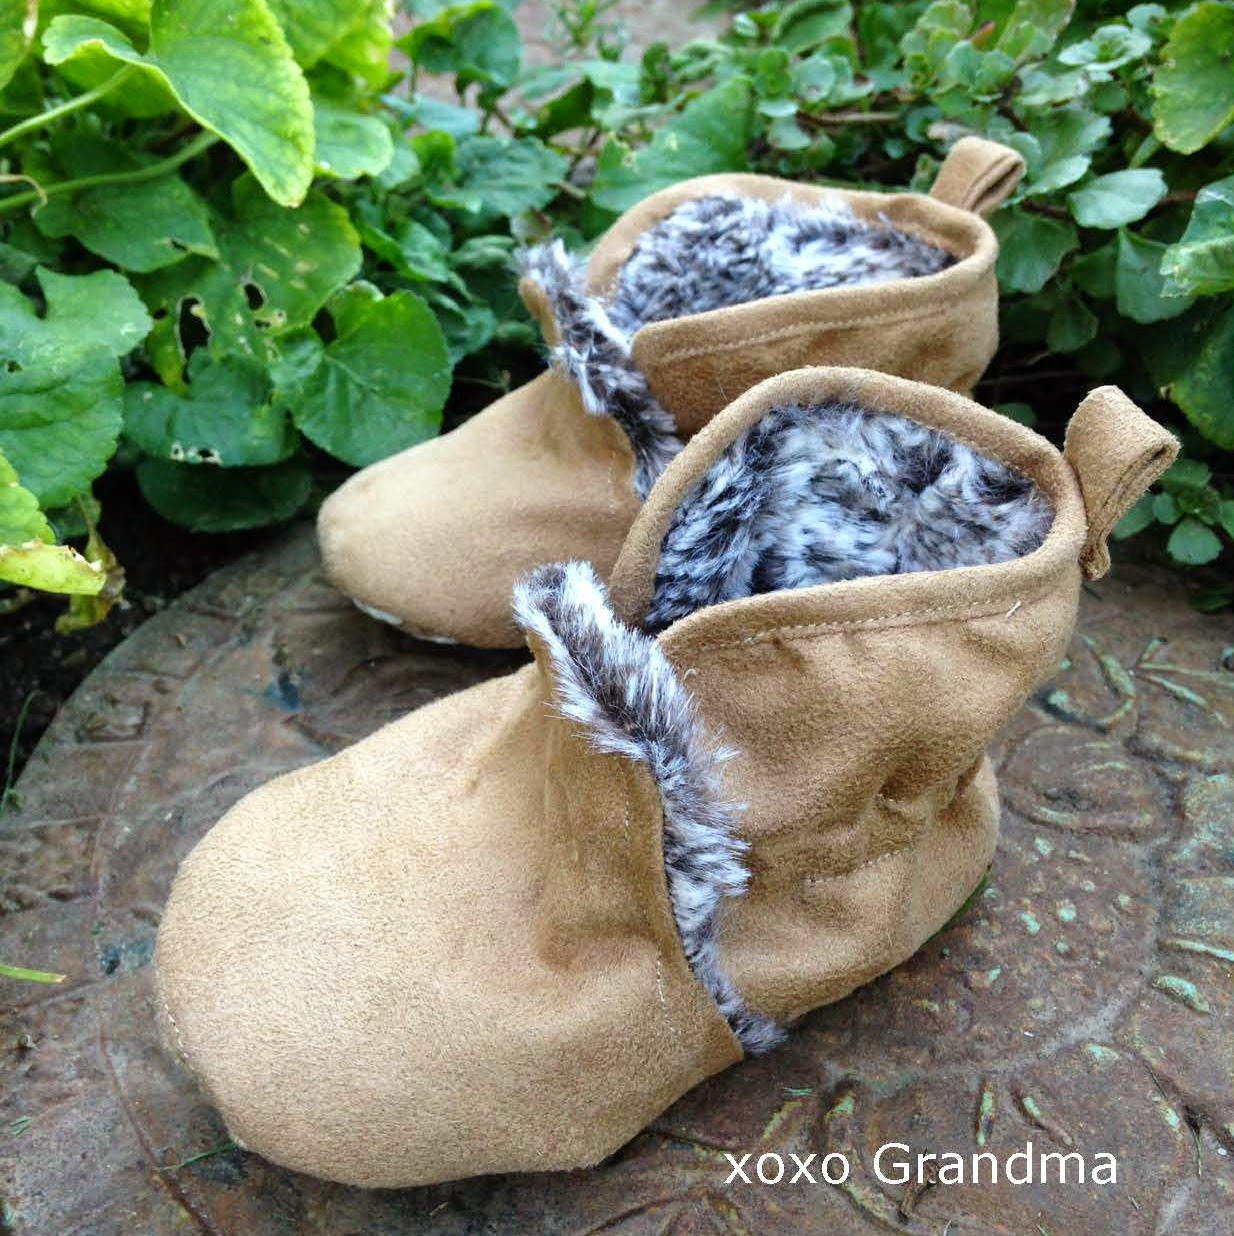 http://xoxograndma.blogspot.com/2014/11/warm-lined-baby-booties-tutorial-and.html